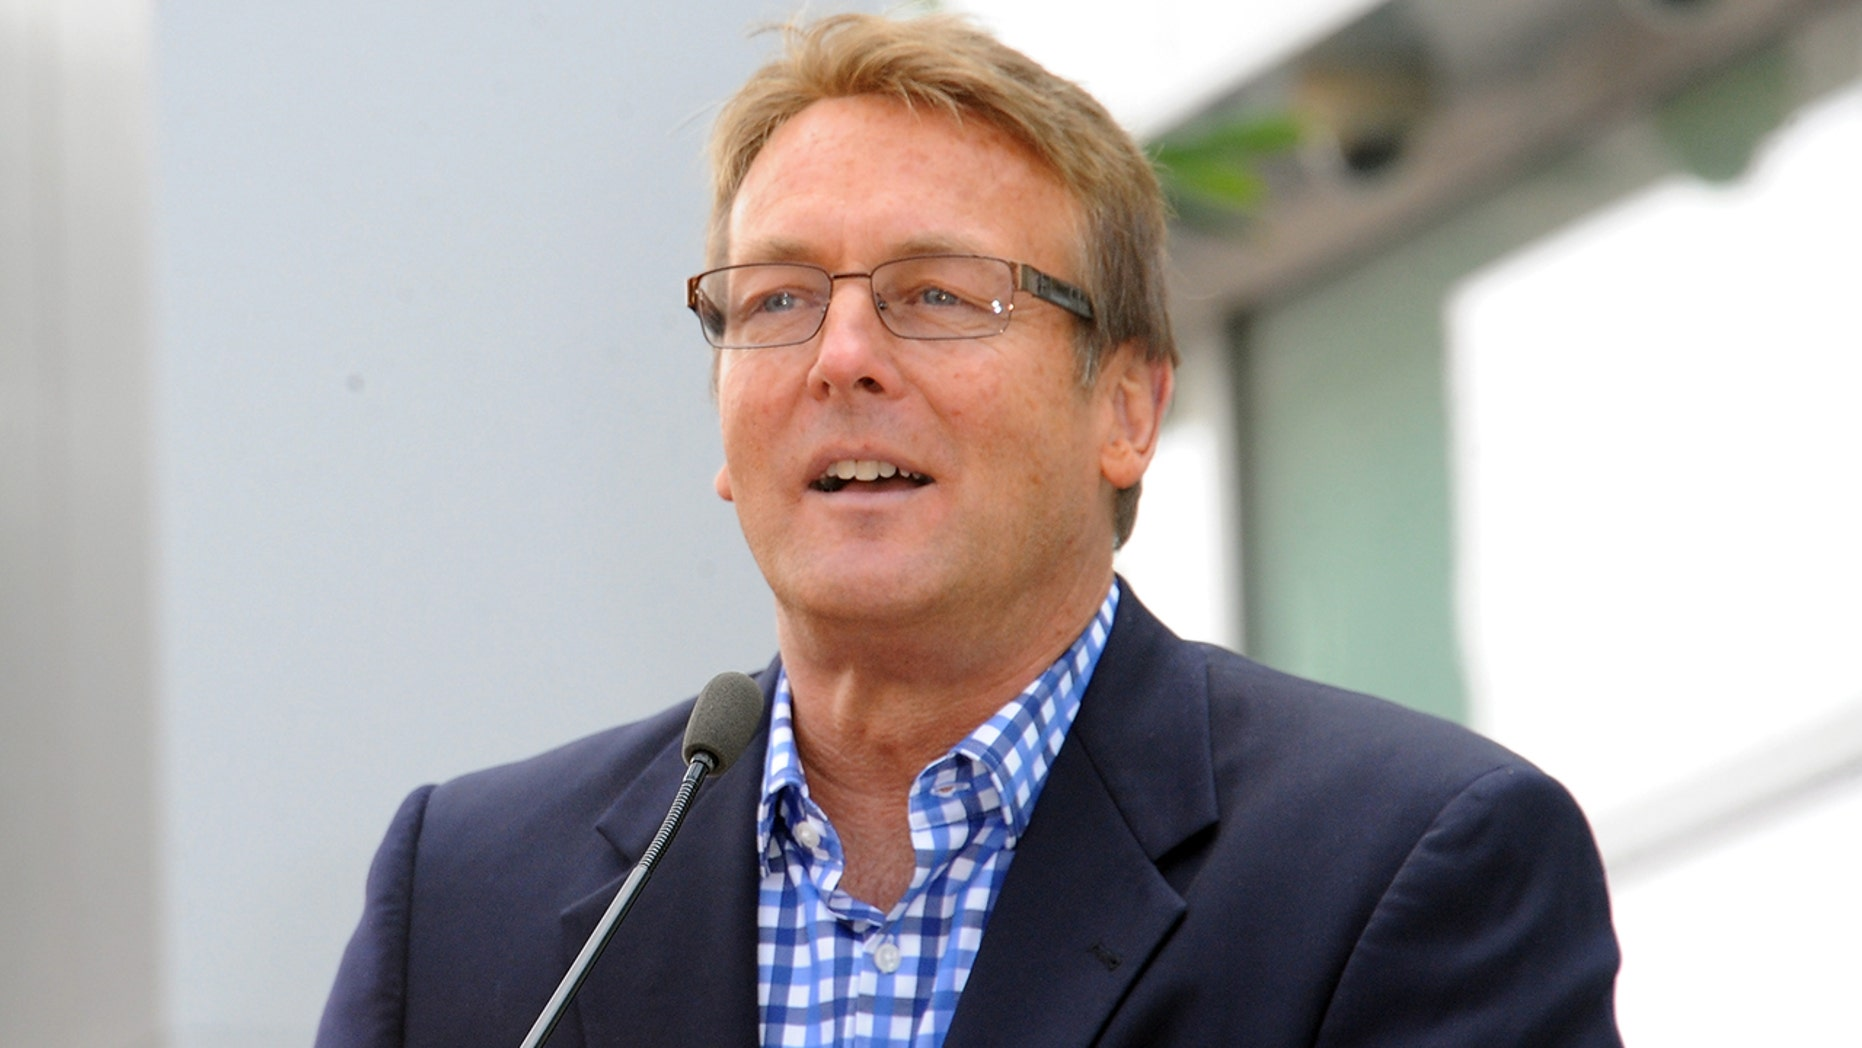 'Young and the Restless' star Doug Davidson is leaving the show after 40 years.